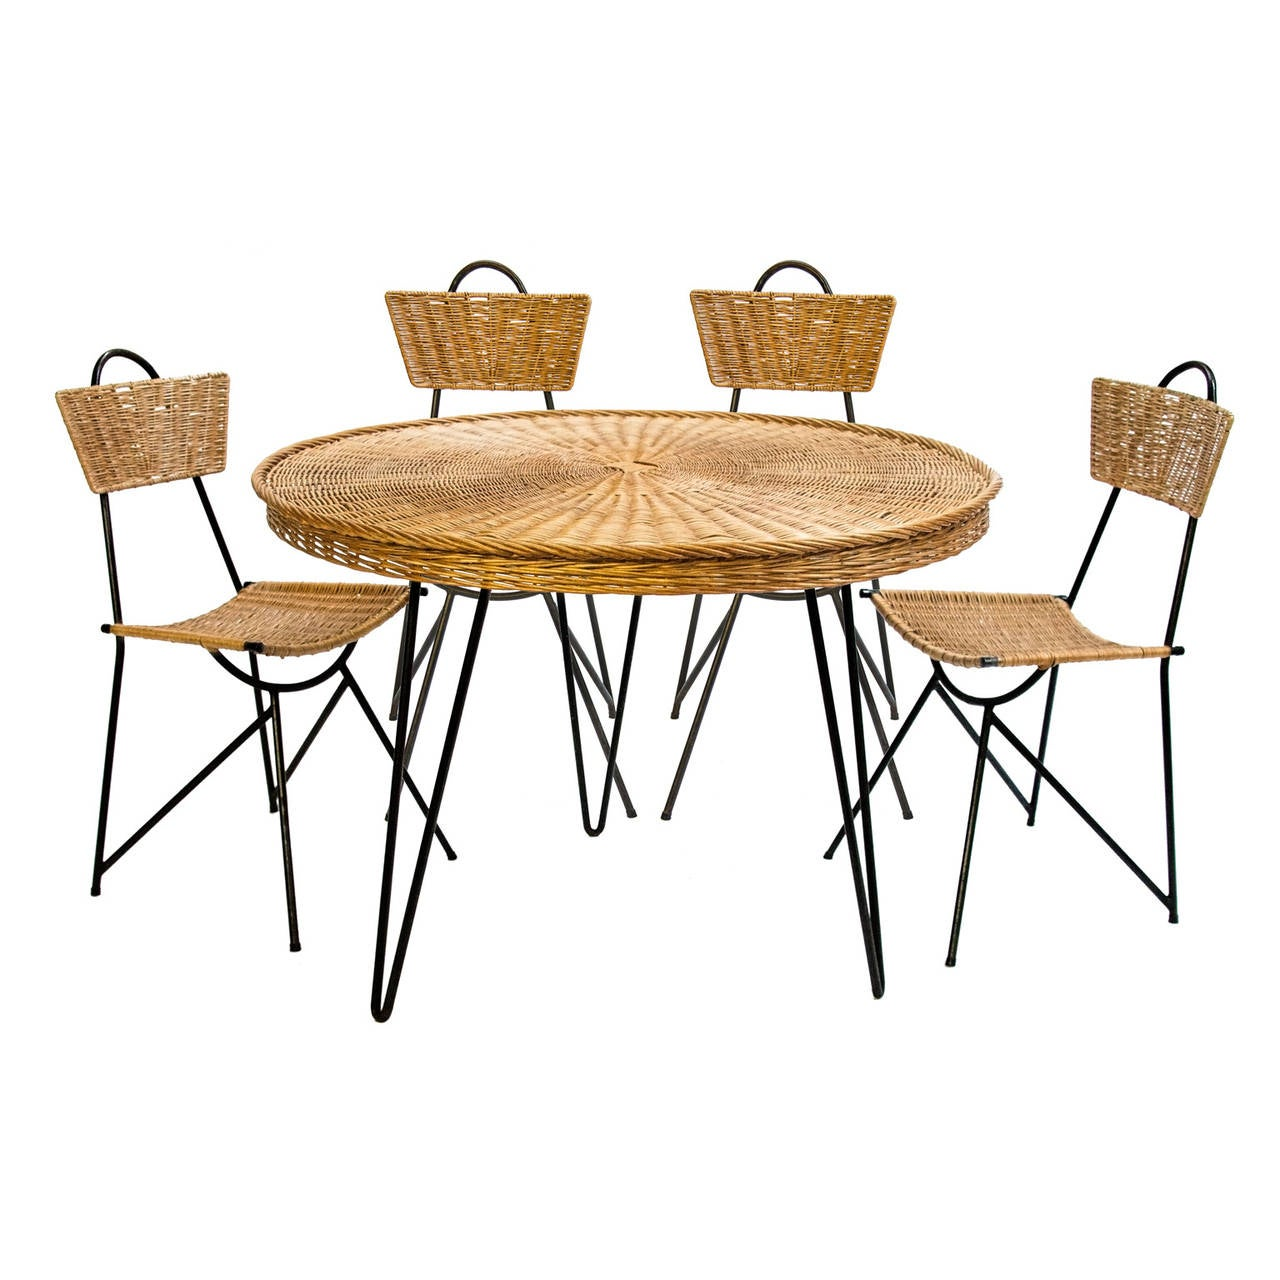 1950s Black Metal and Rattan Dining Set in the style of Franco Albini For Sale